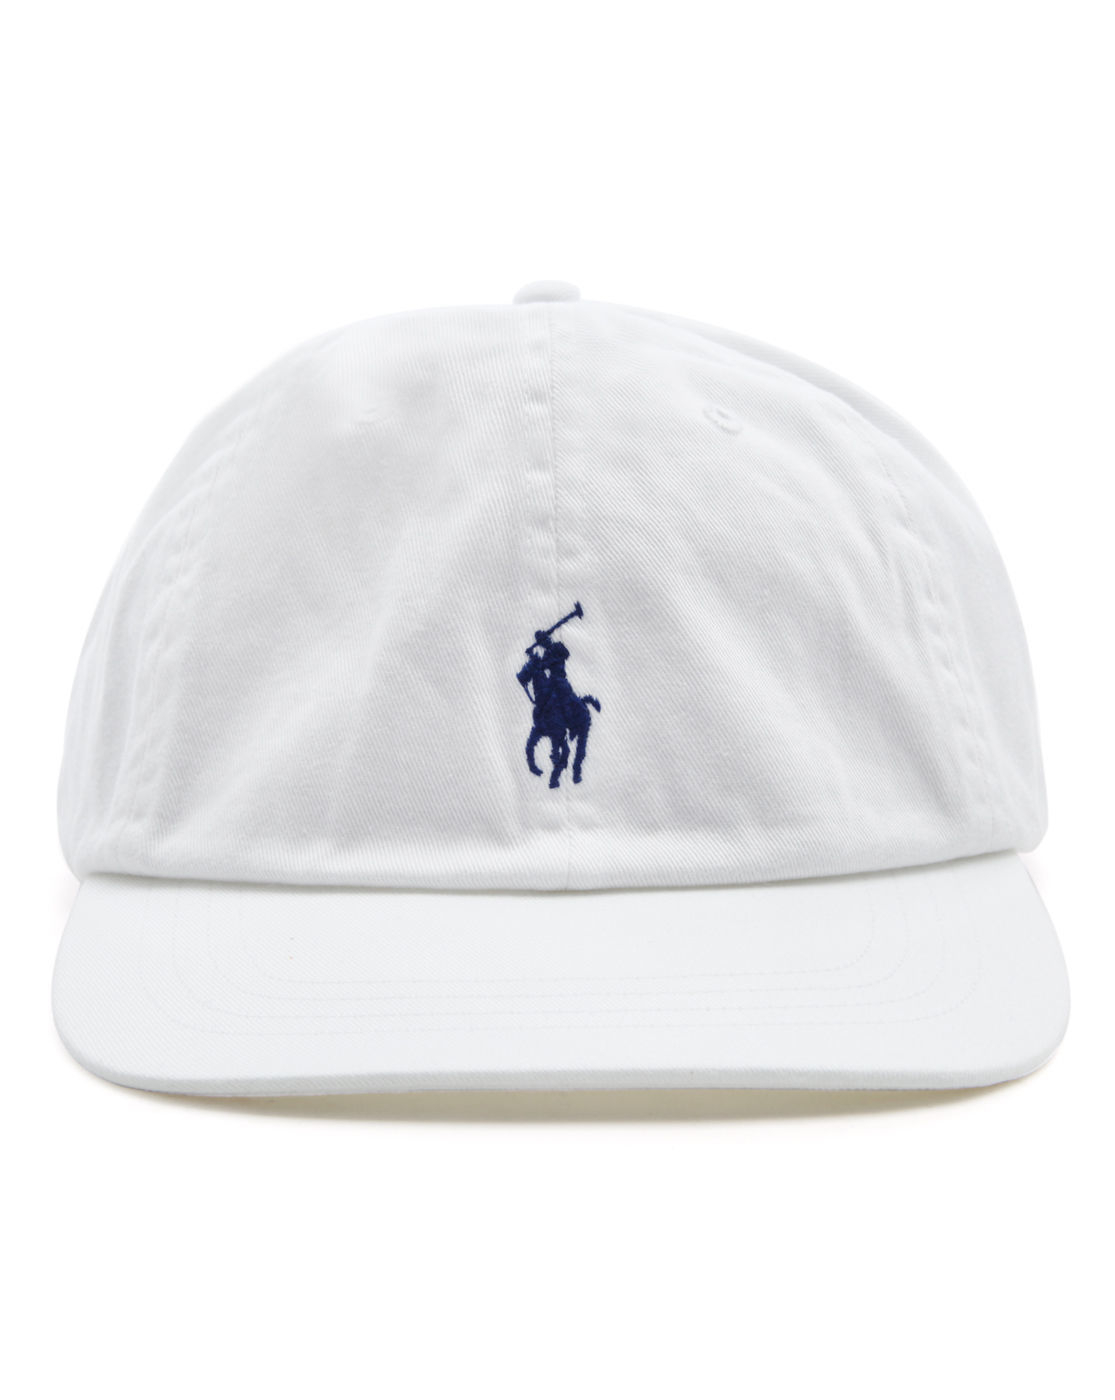 polo ralph lauren classic sport white cap in white for men. Black Bedroom Furniture Sets. Home Design Ideas